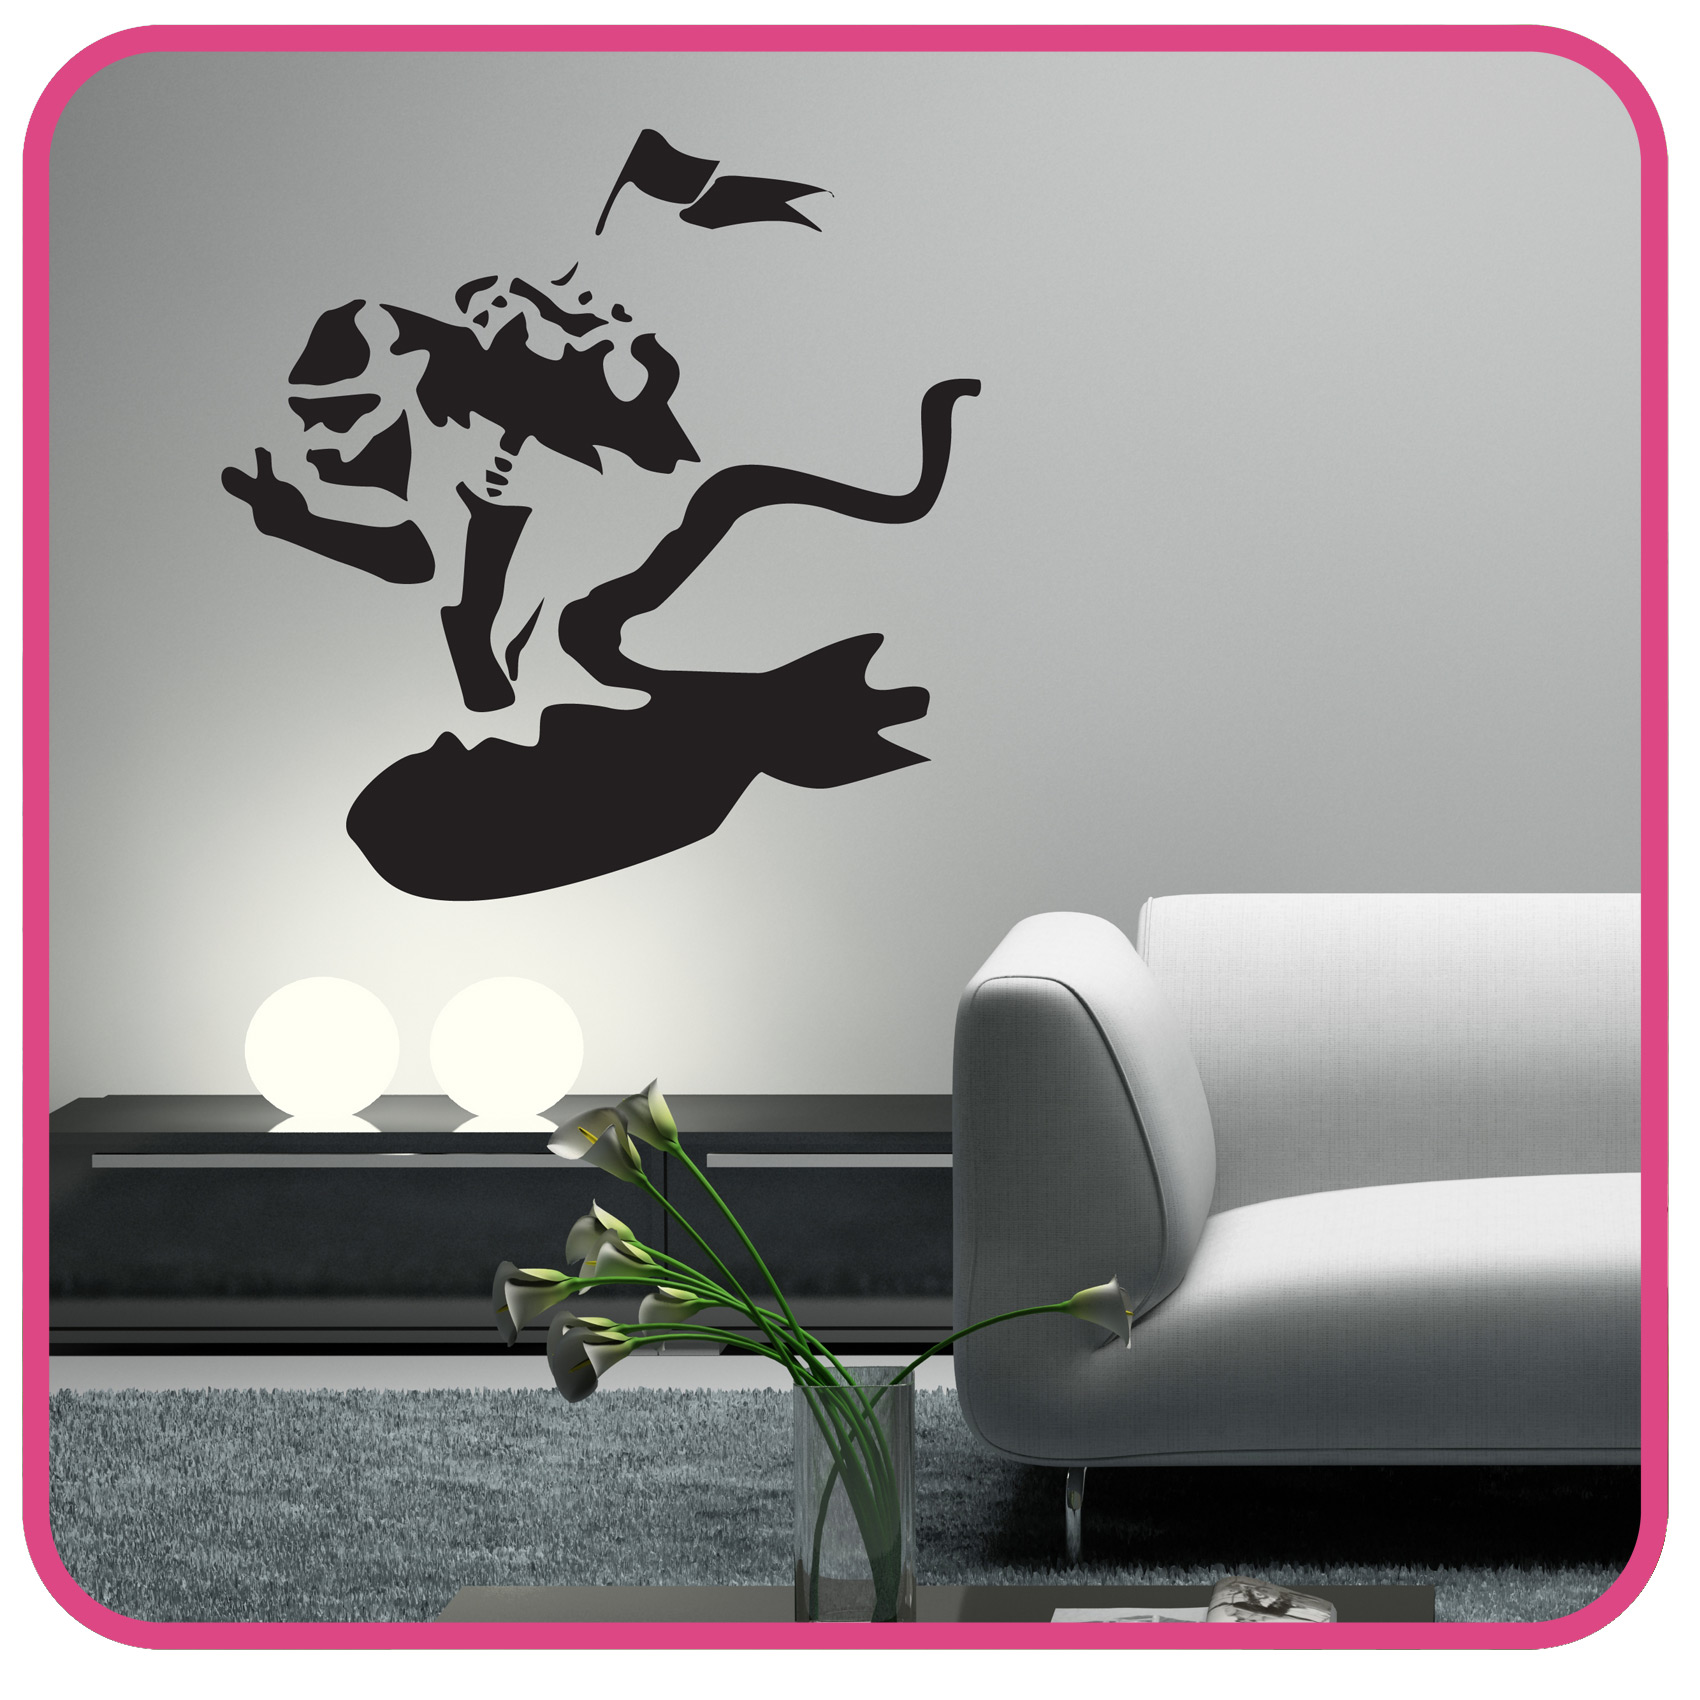 surf stickers ebay images surfing wall decals amp wall stickers zazzle